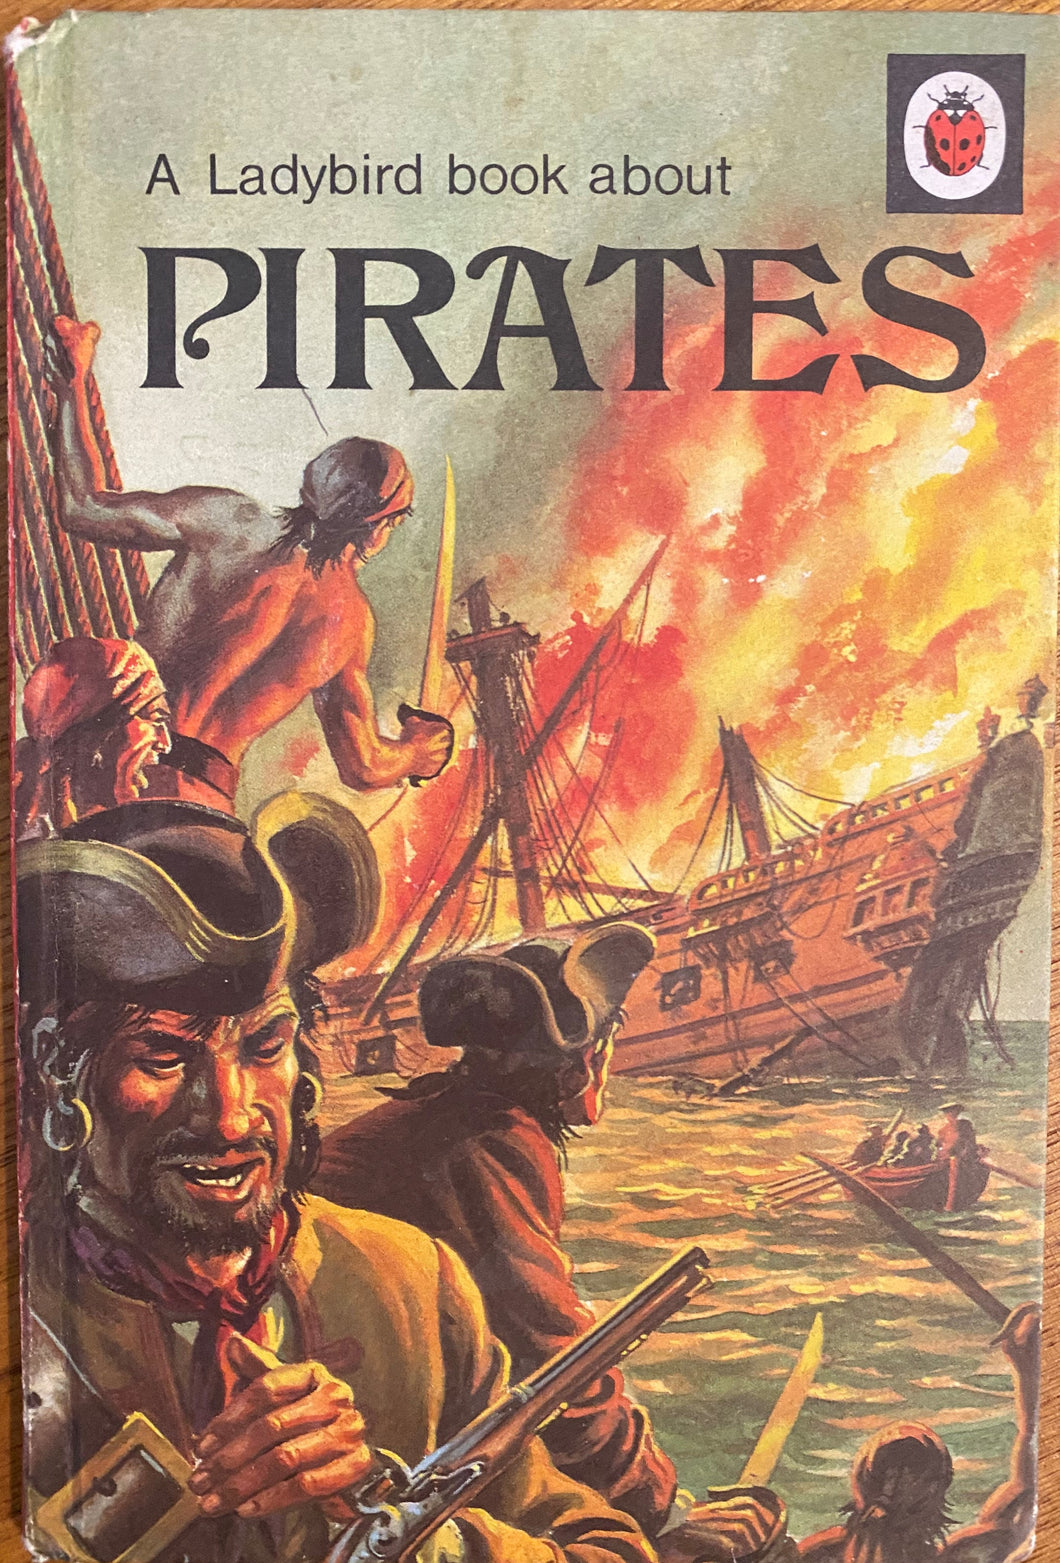 Pirates ( 1 January 1984 - 31 December 1985)